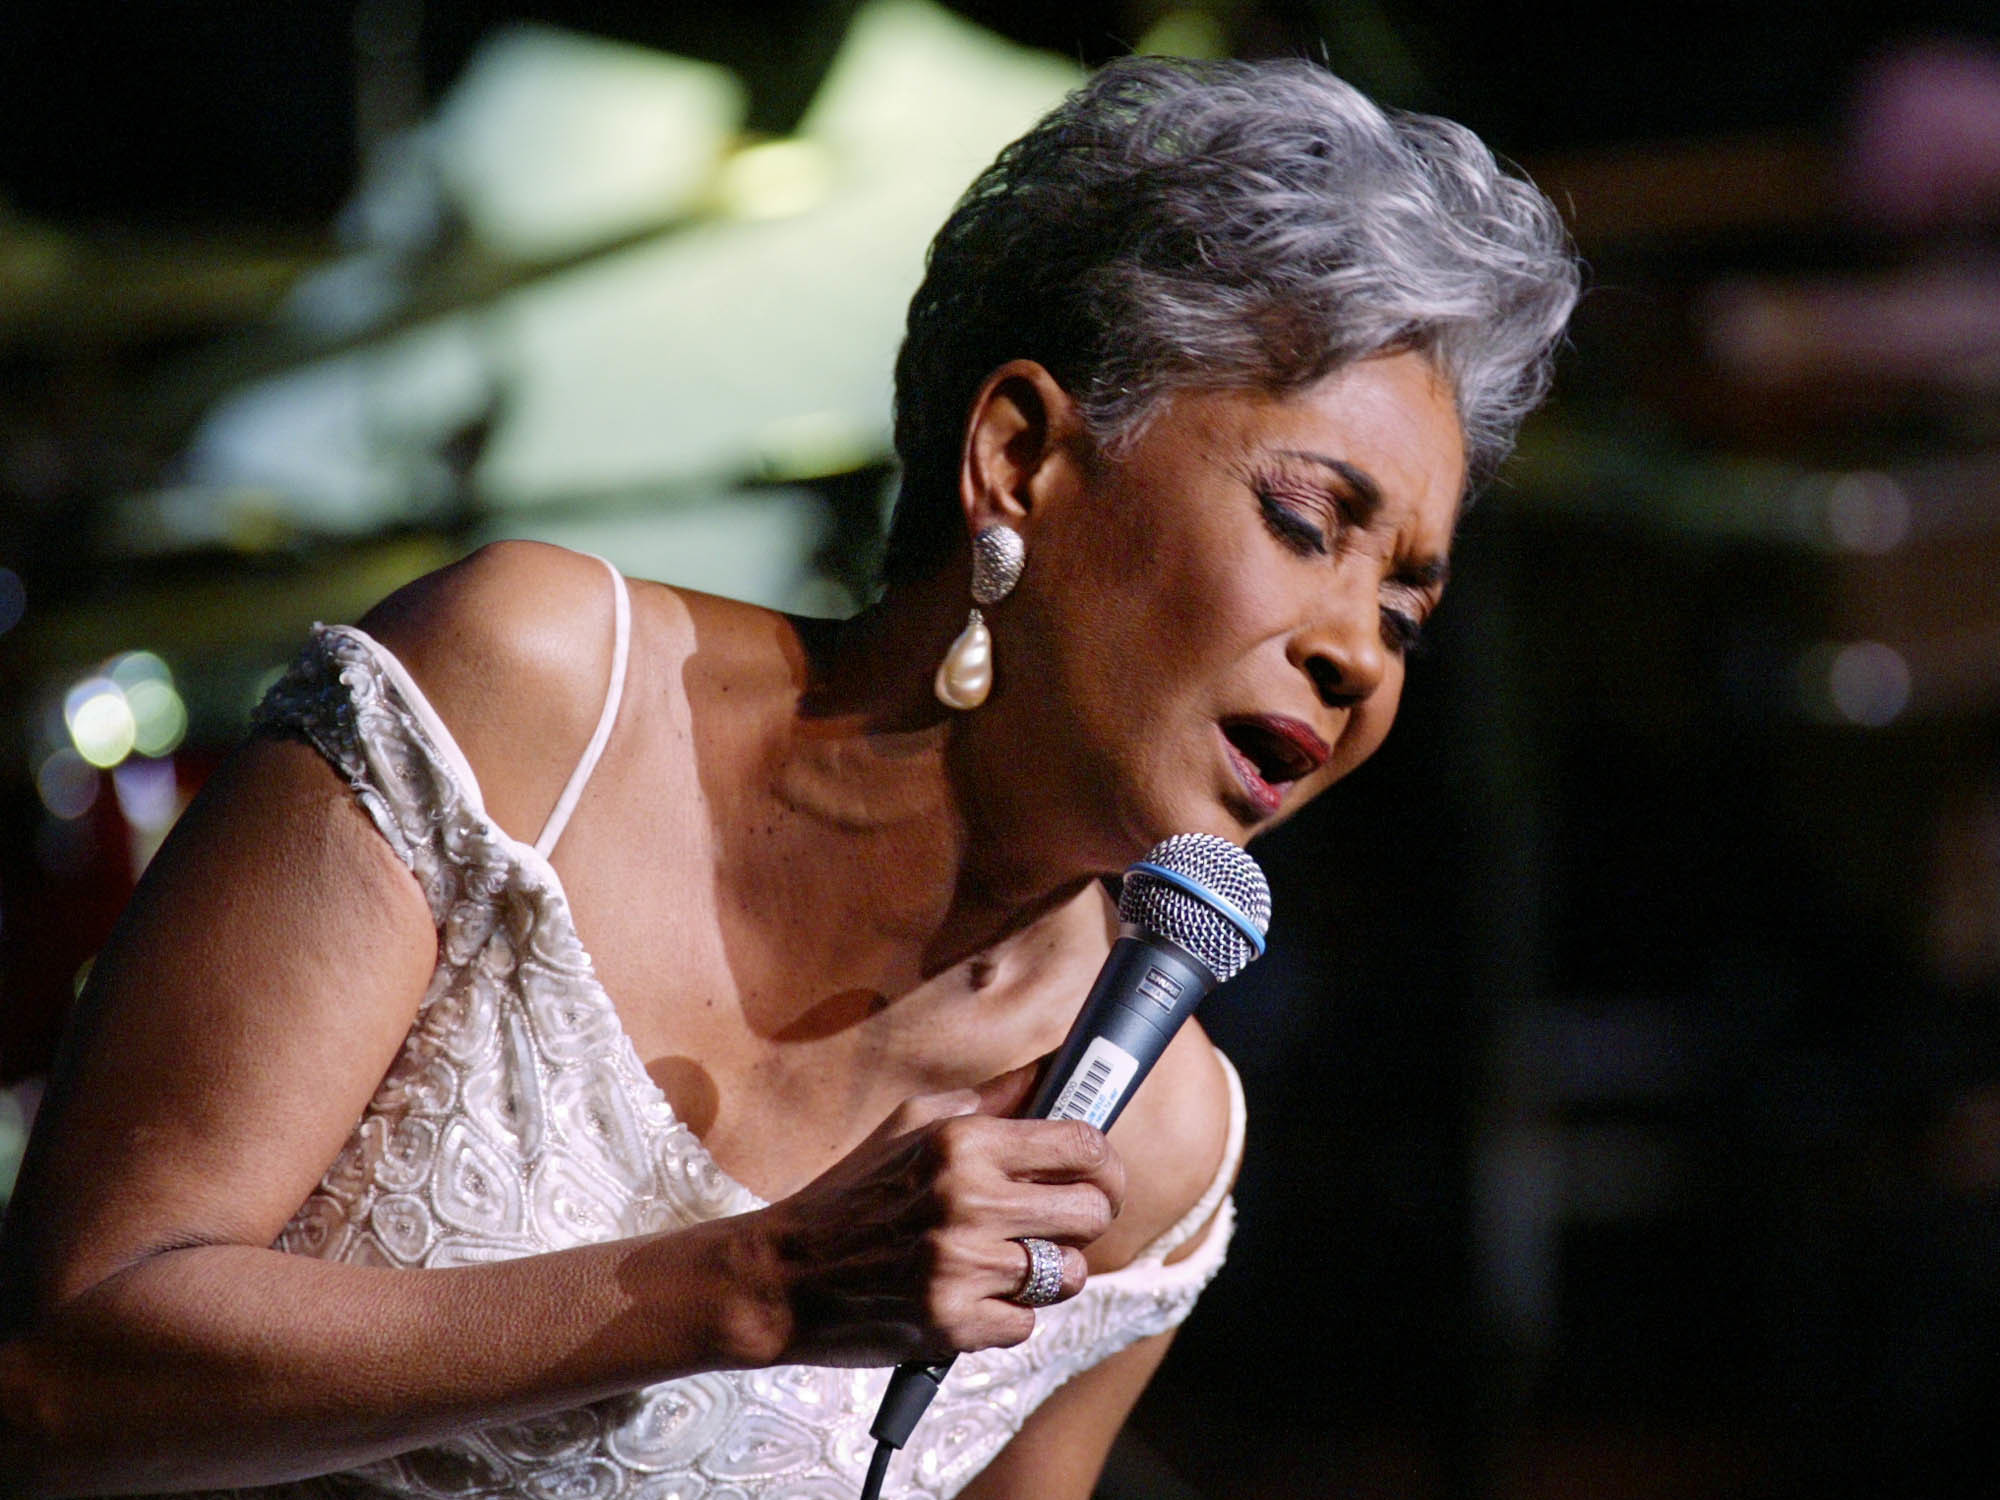 Jazz icon Nancy Wilson dies aged 81 after battling illness